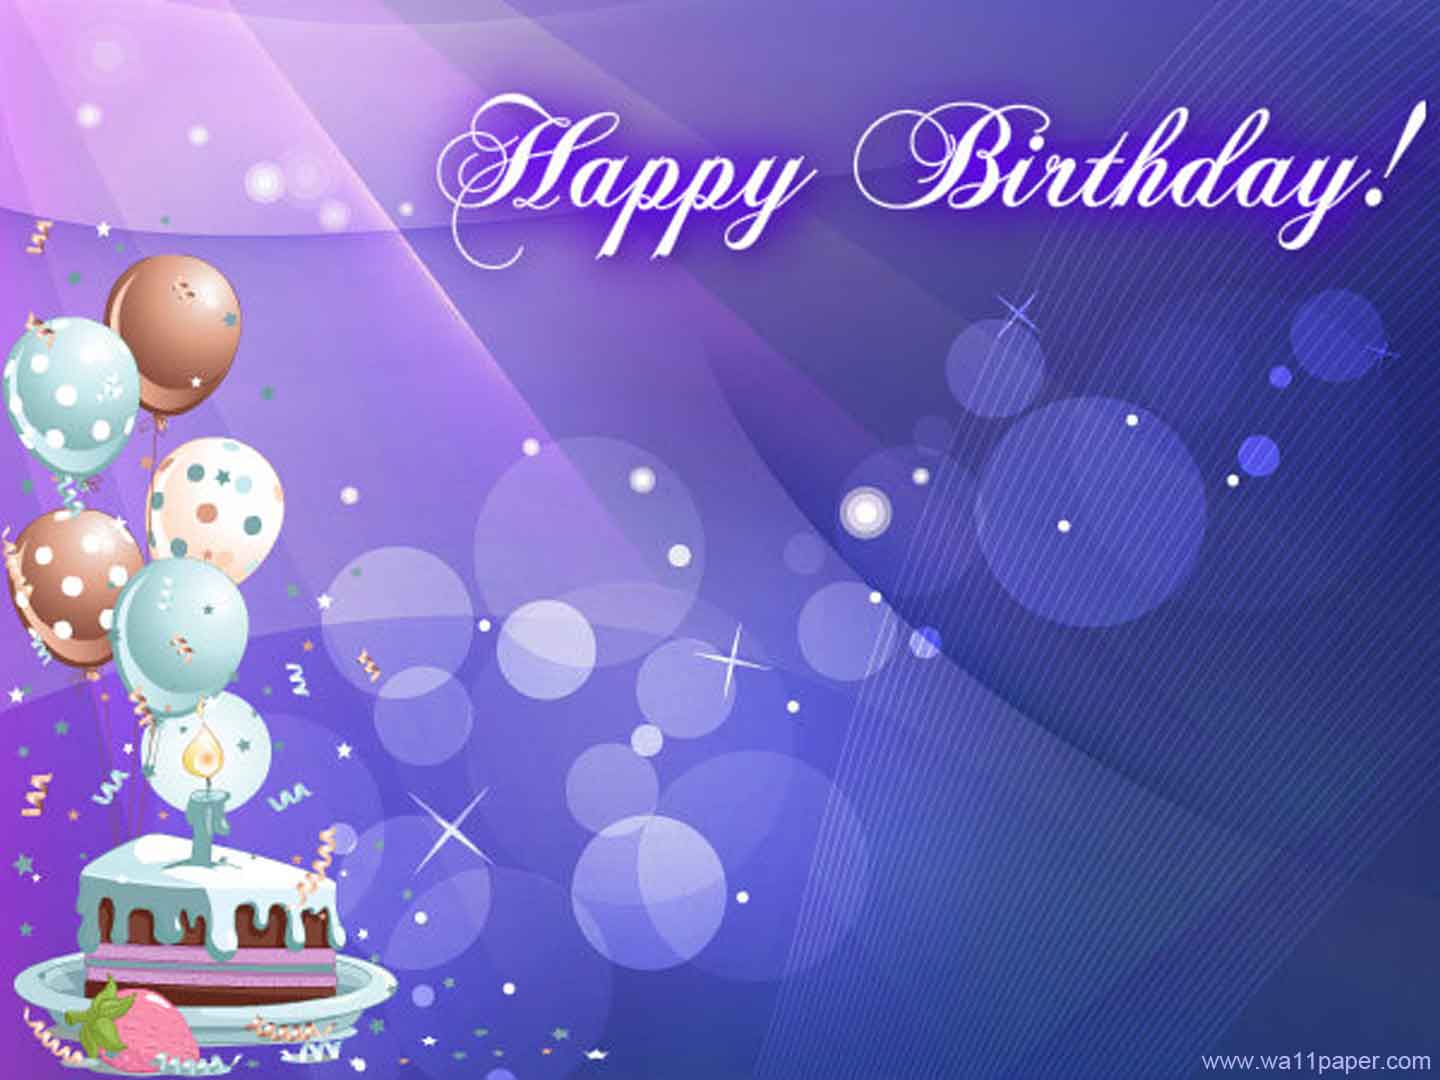 christmas birthday background ; Awesome-Happy-Birthday-Background-Wallpaper-2